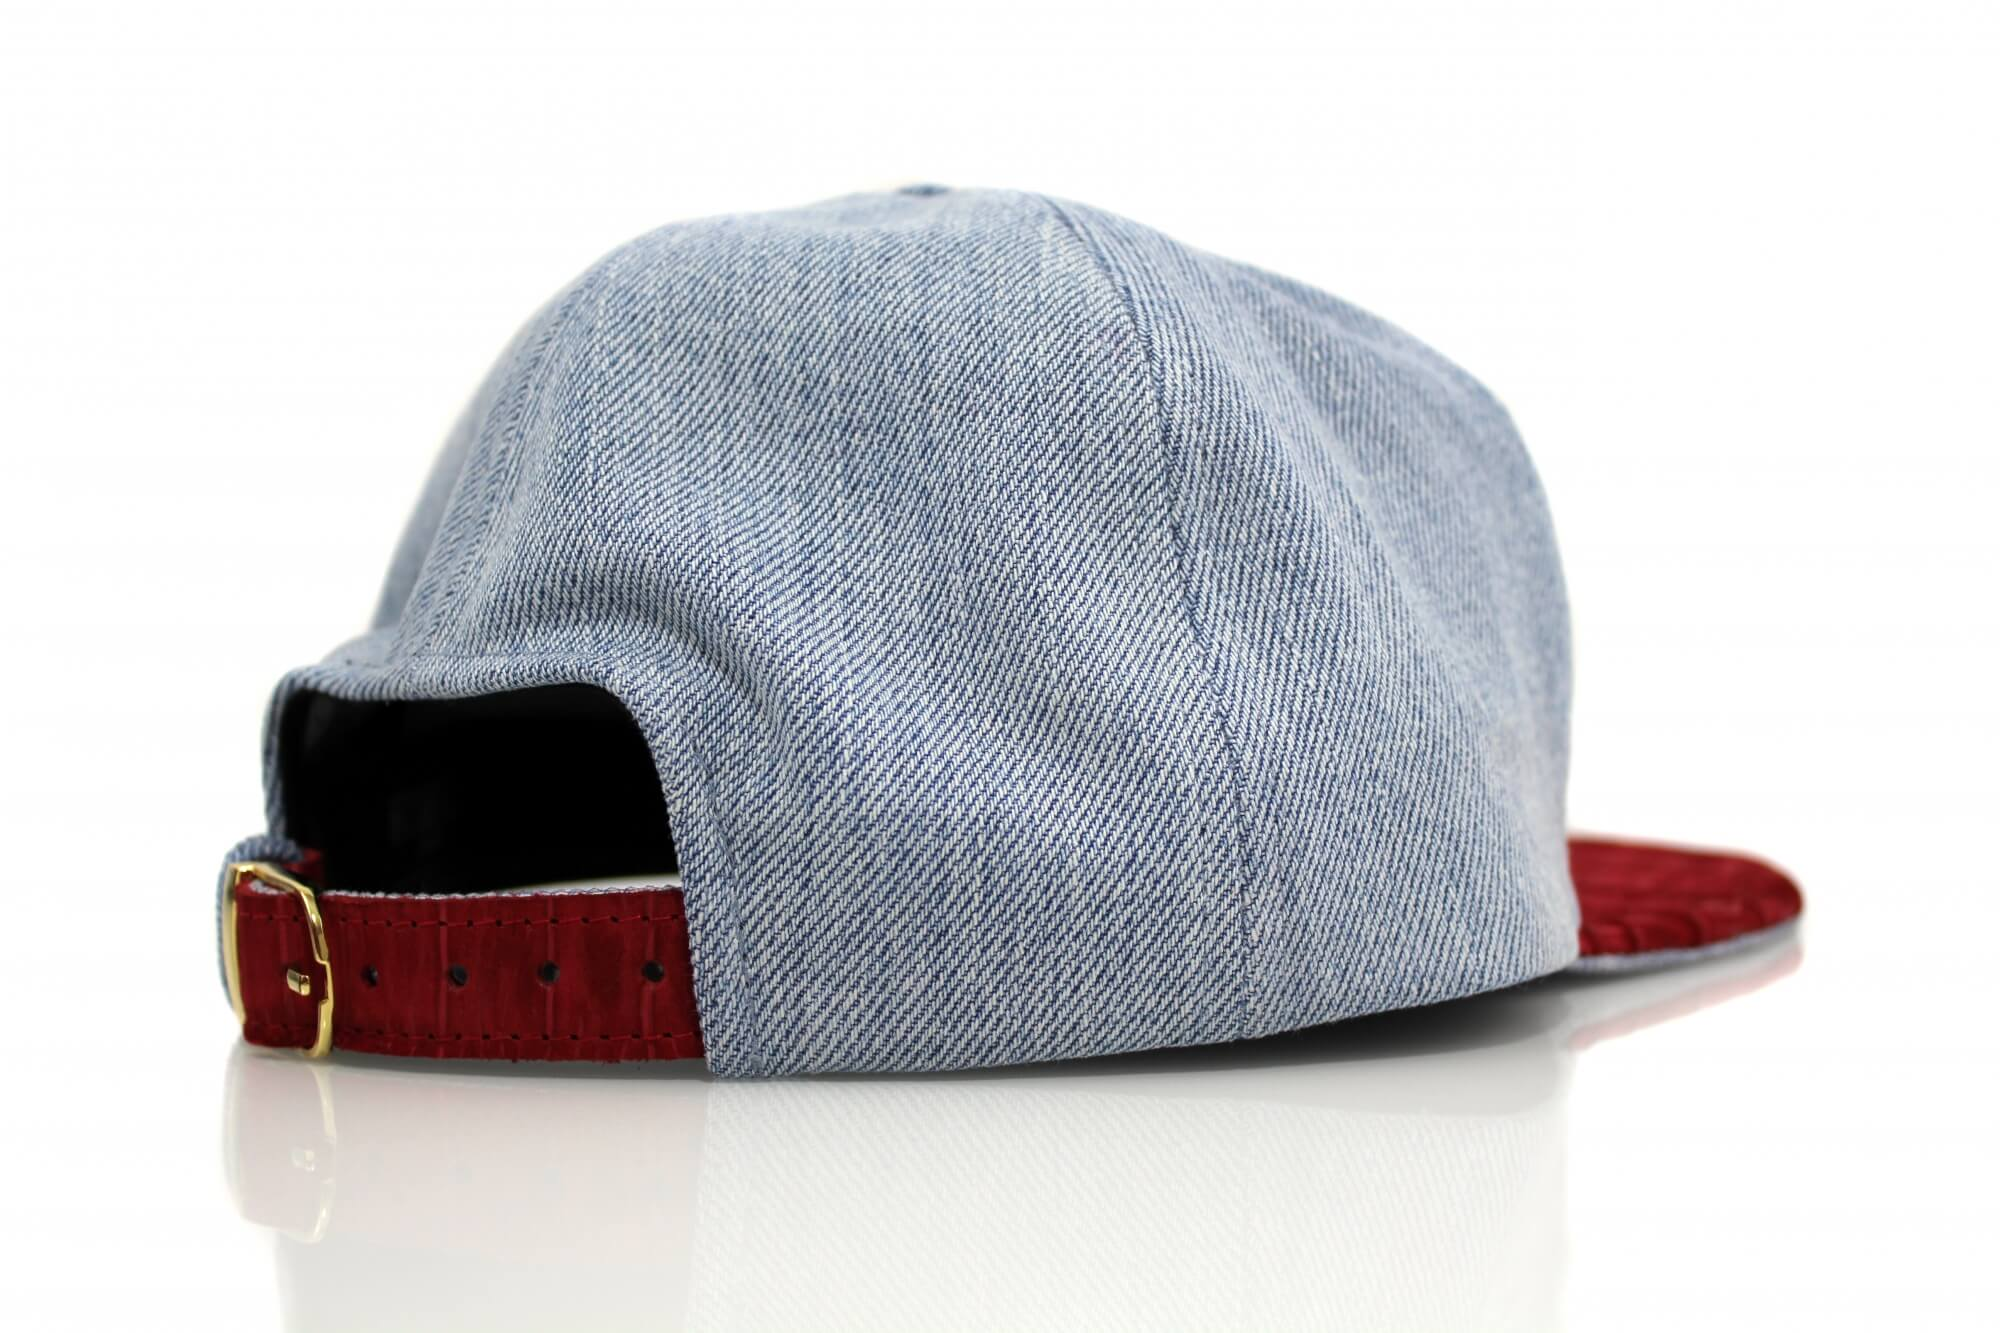 Red Suede Croc Denim Strapback